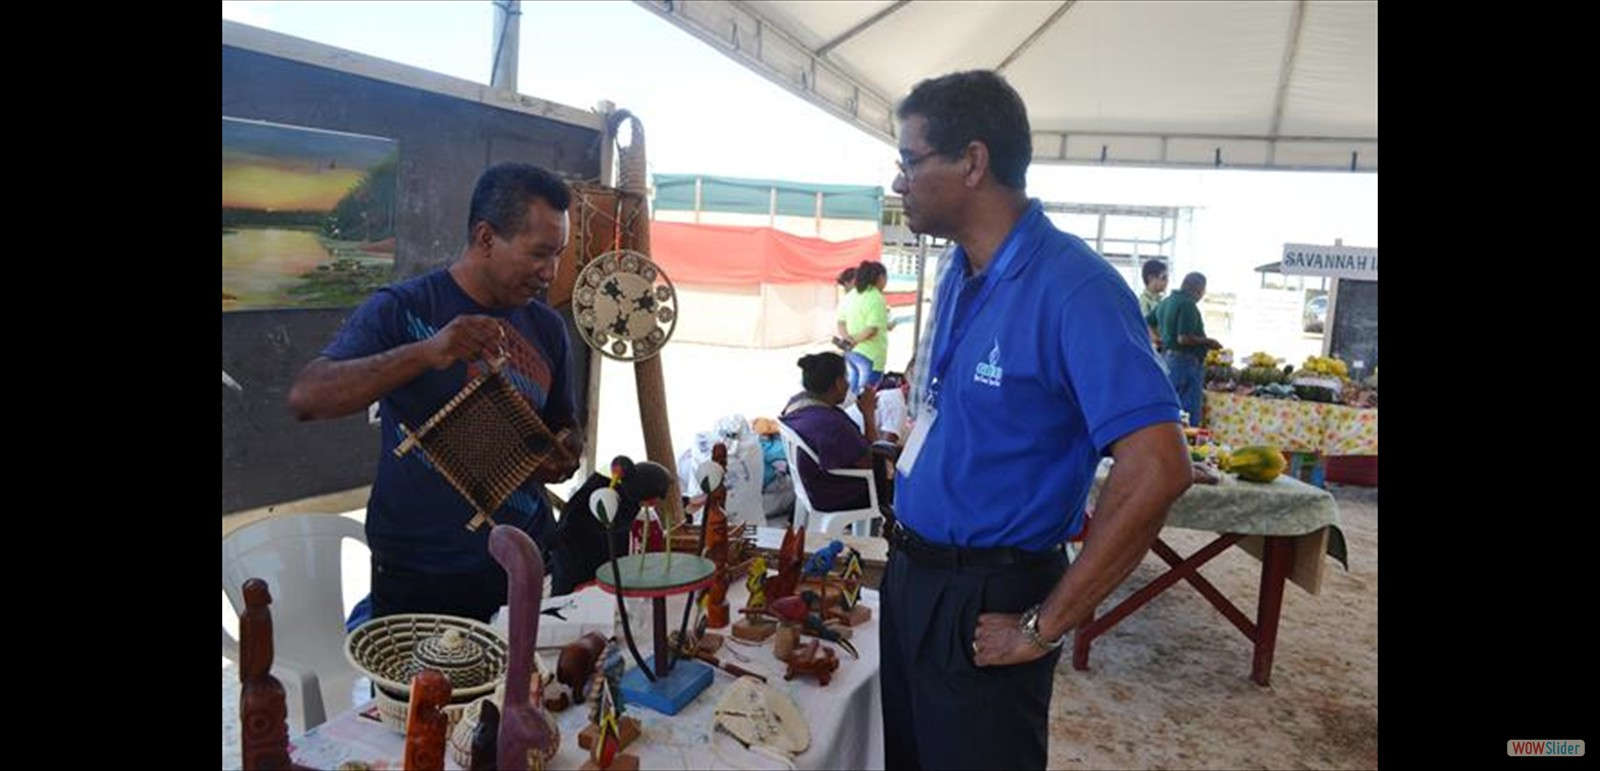 Exhibitor shows one of his items to a visitor at the Rupununi Expo